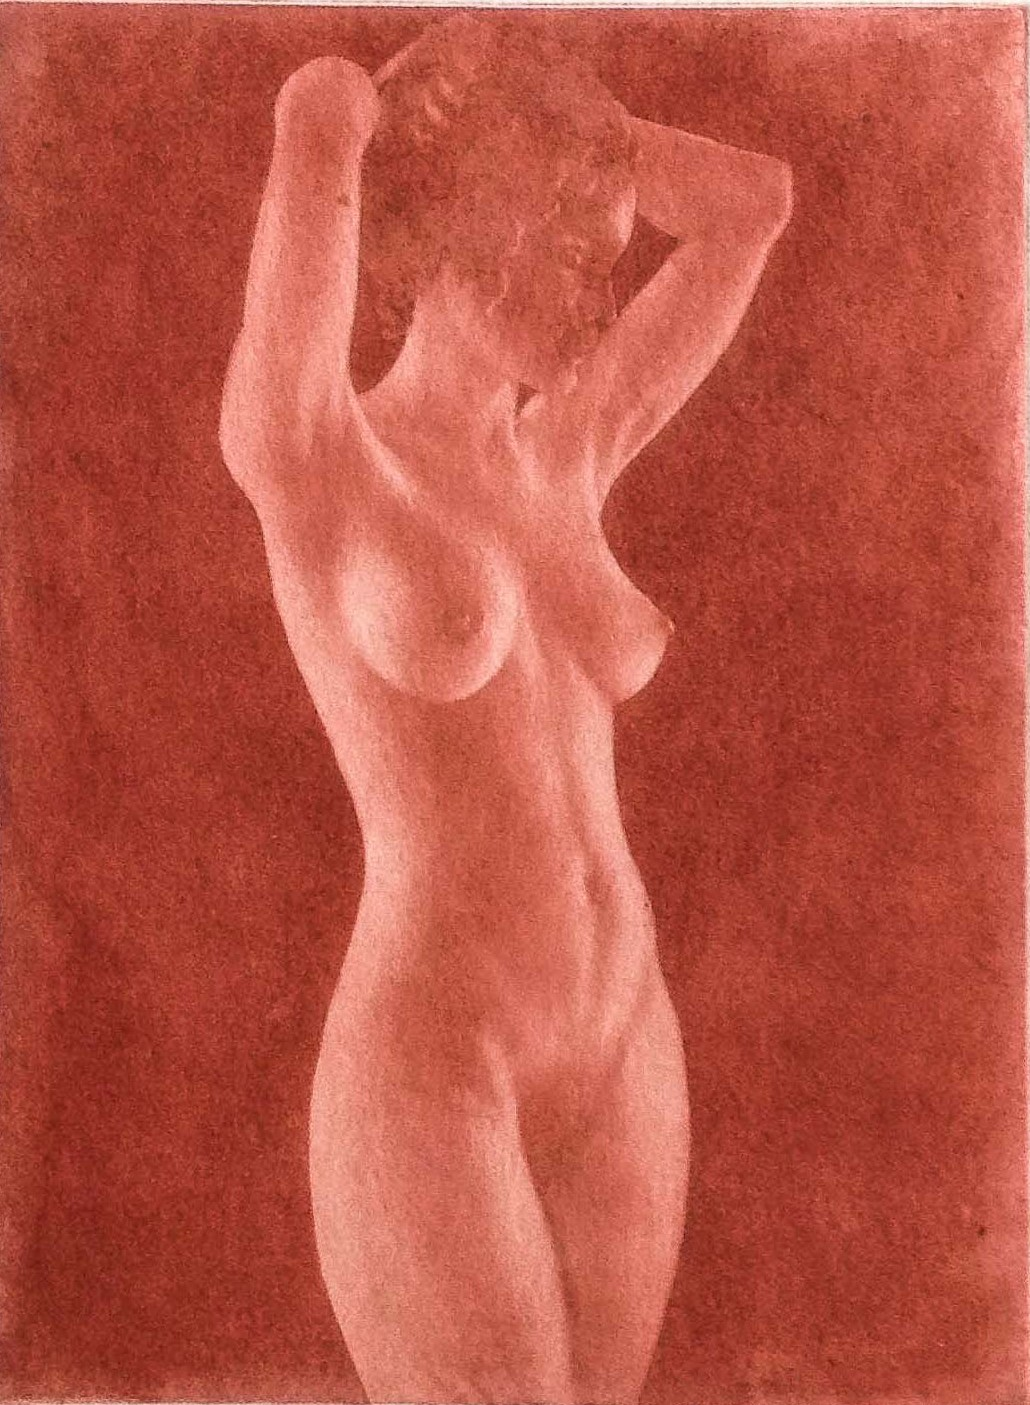 Yves-Marie de Malleray. Naked Body